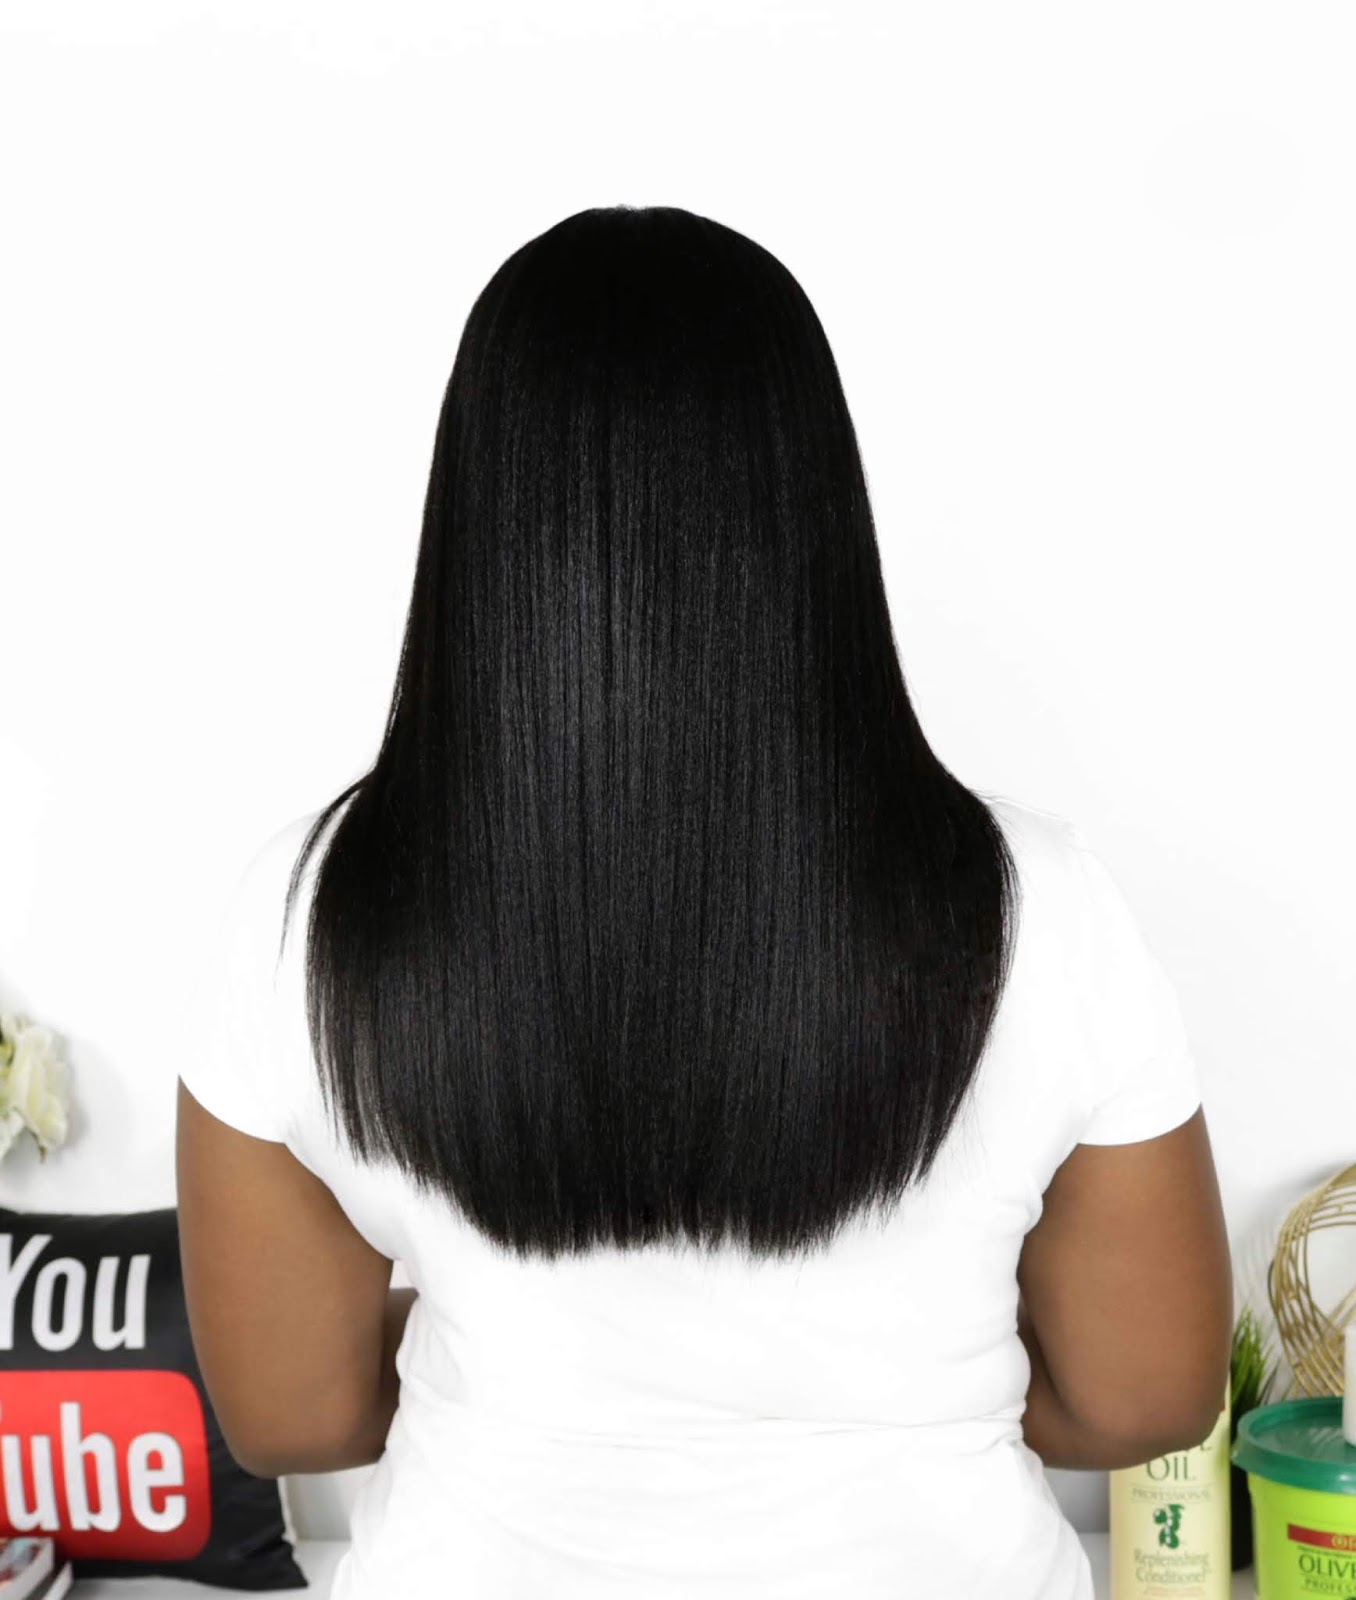 I Cut My Hair! | Relaxed Hair | www.Hairliciousinc.com